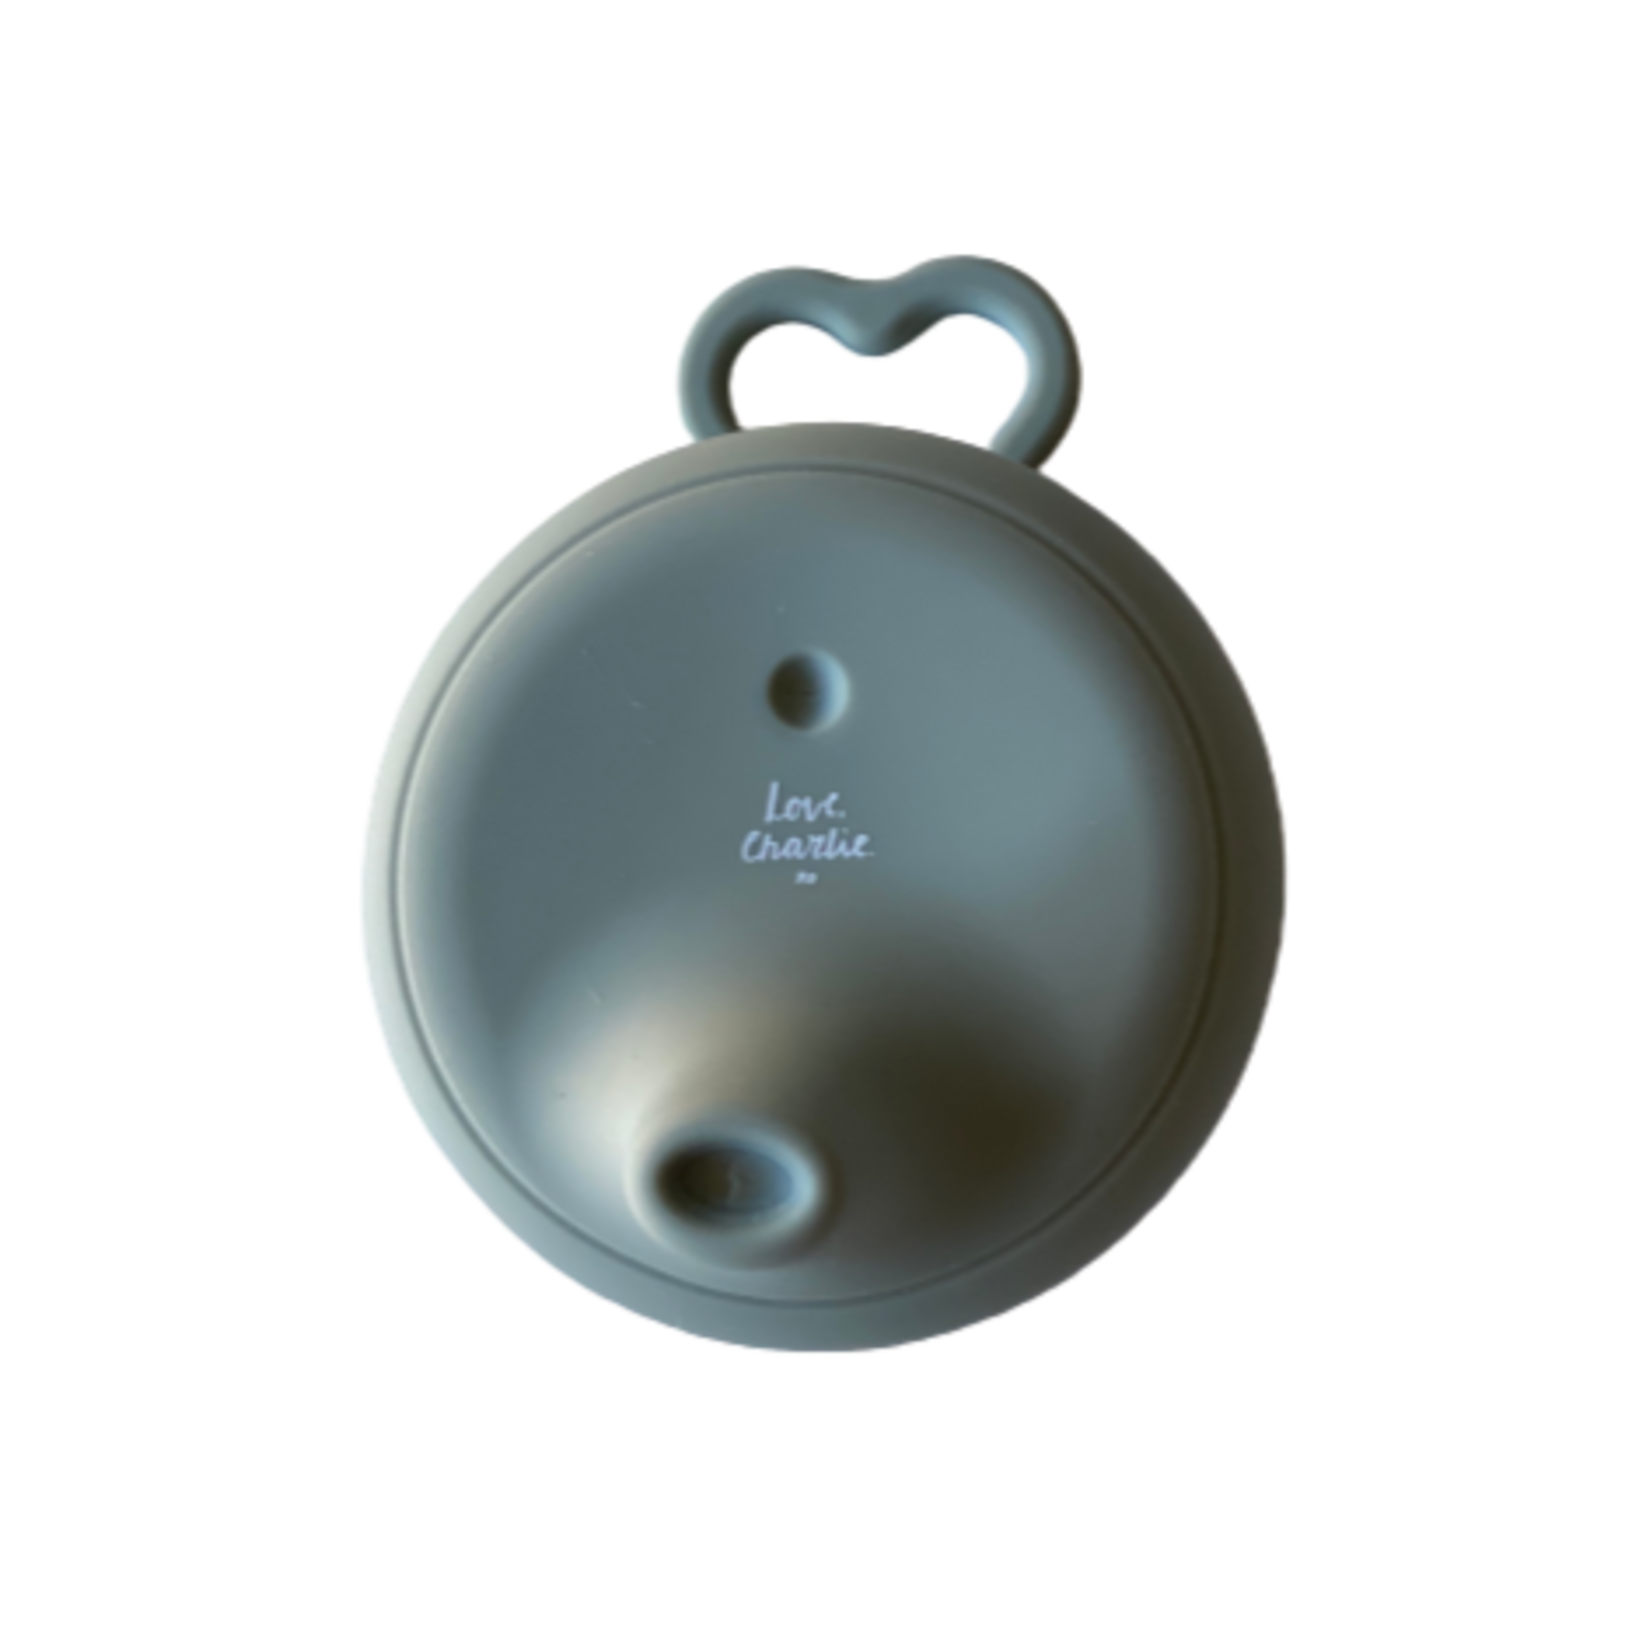 LOVE CHARLIE Love Charlie Silicone Sippy Cup Lid